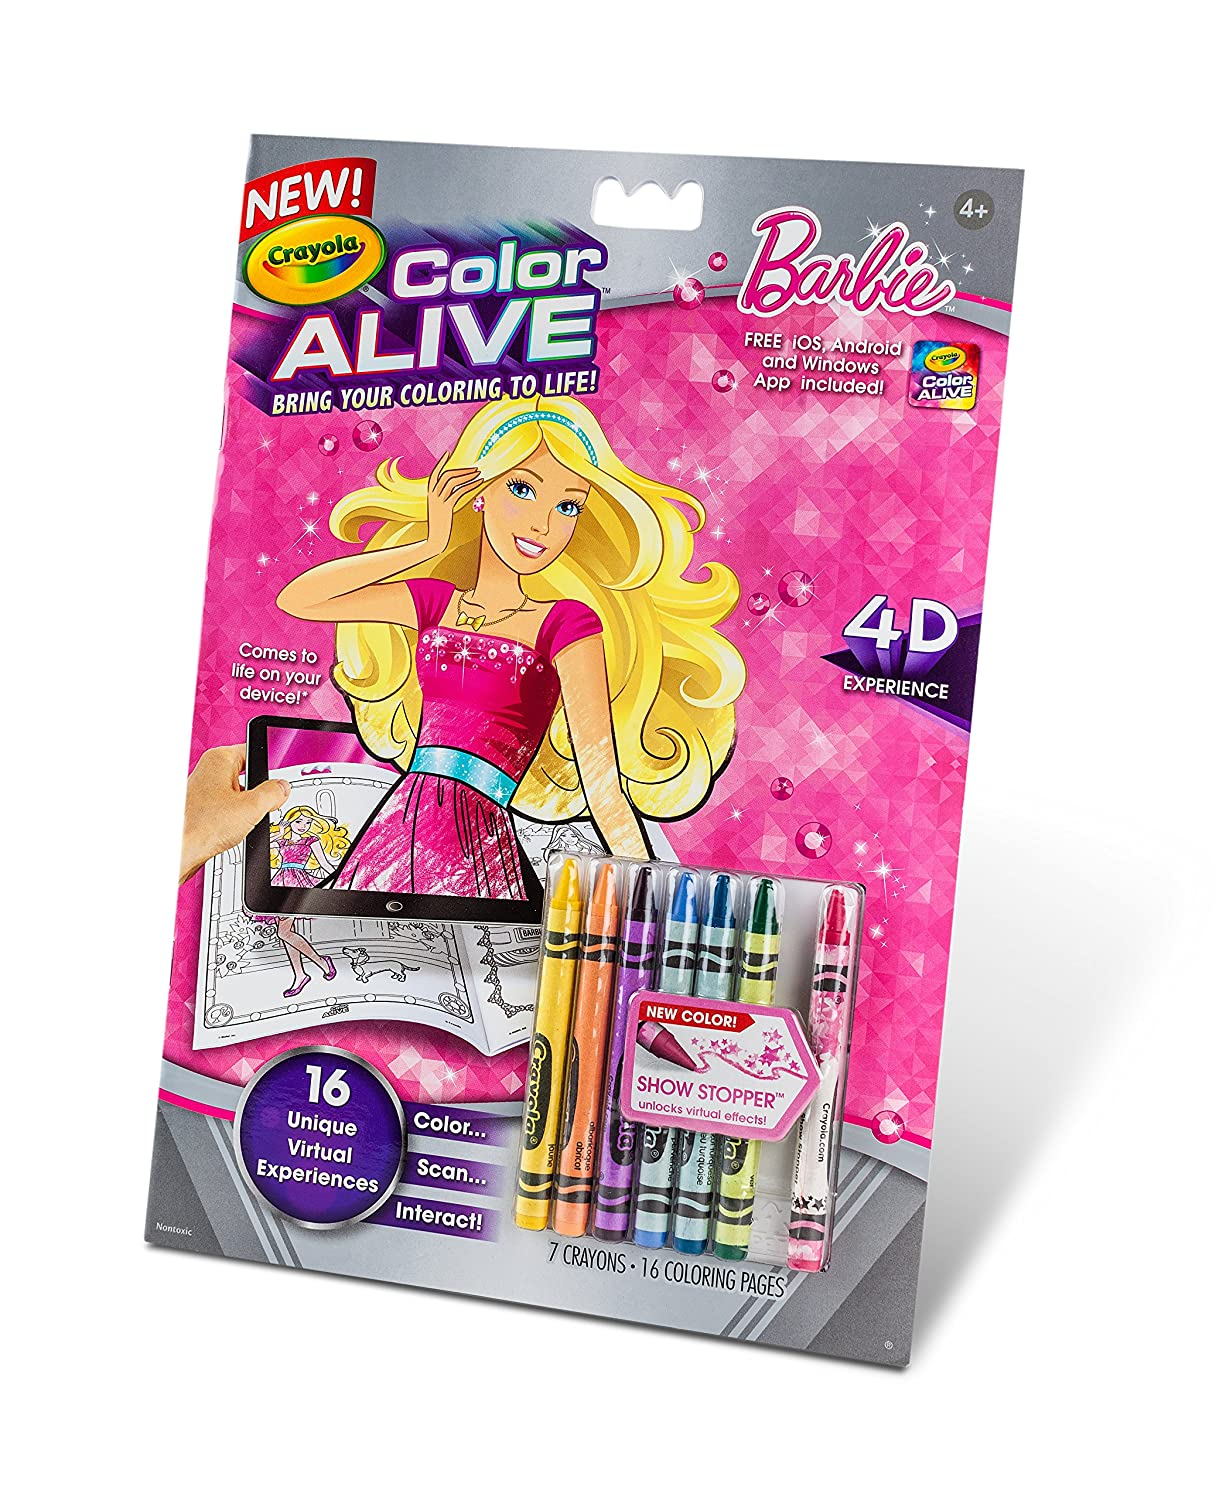 Crayola Color Alive Action Coloring Pages - Barbie